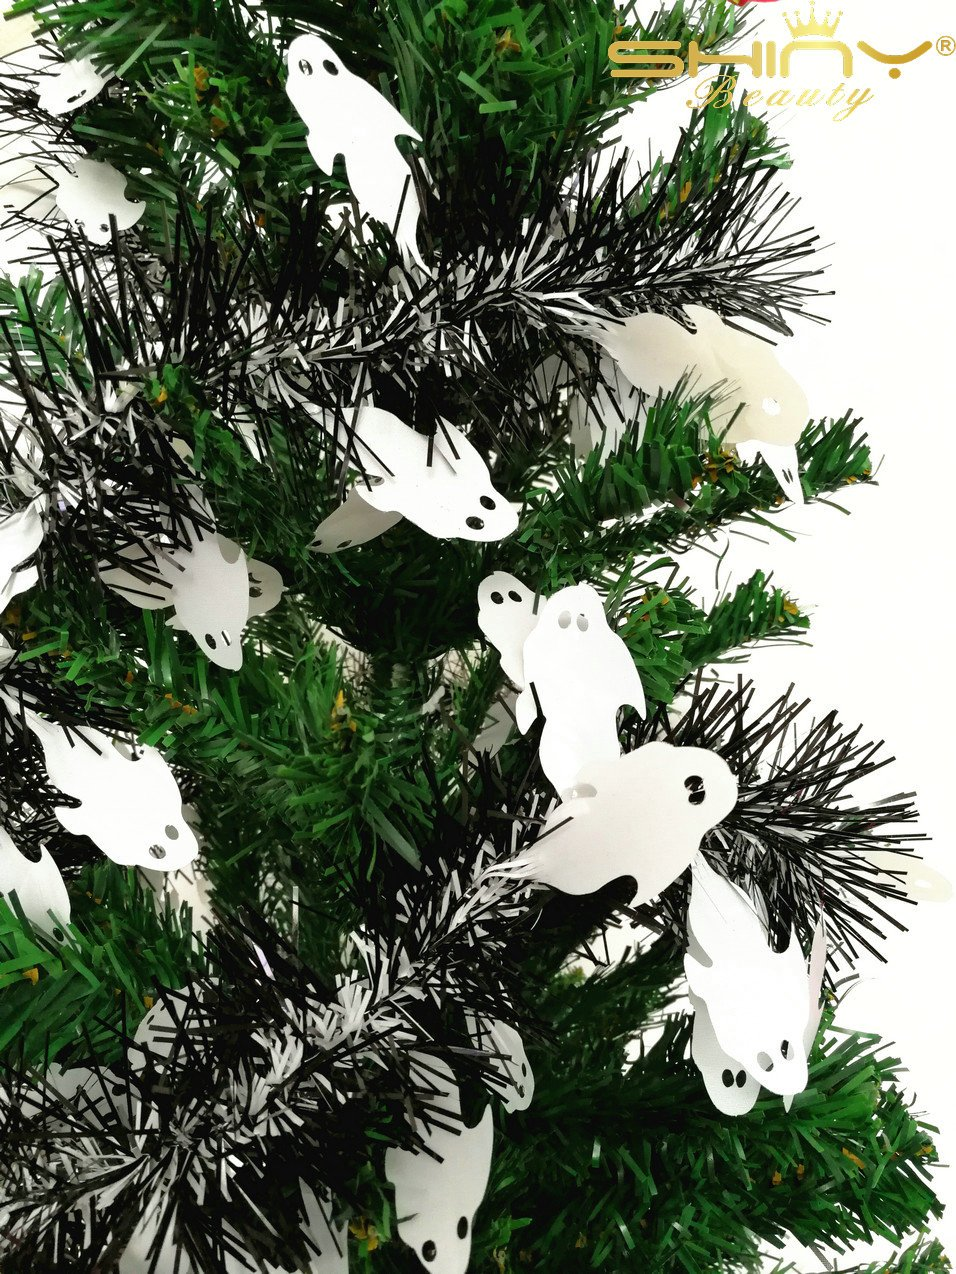 7 Pieces Tinse Garland For Halloween Tree or Door Windows Decoration, Shinny Party Accessory TG004